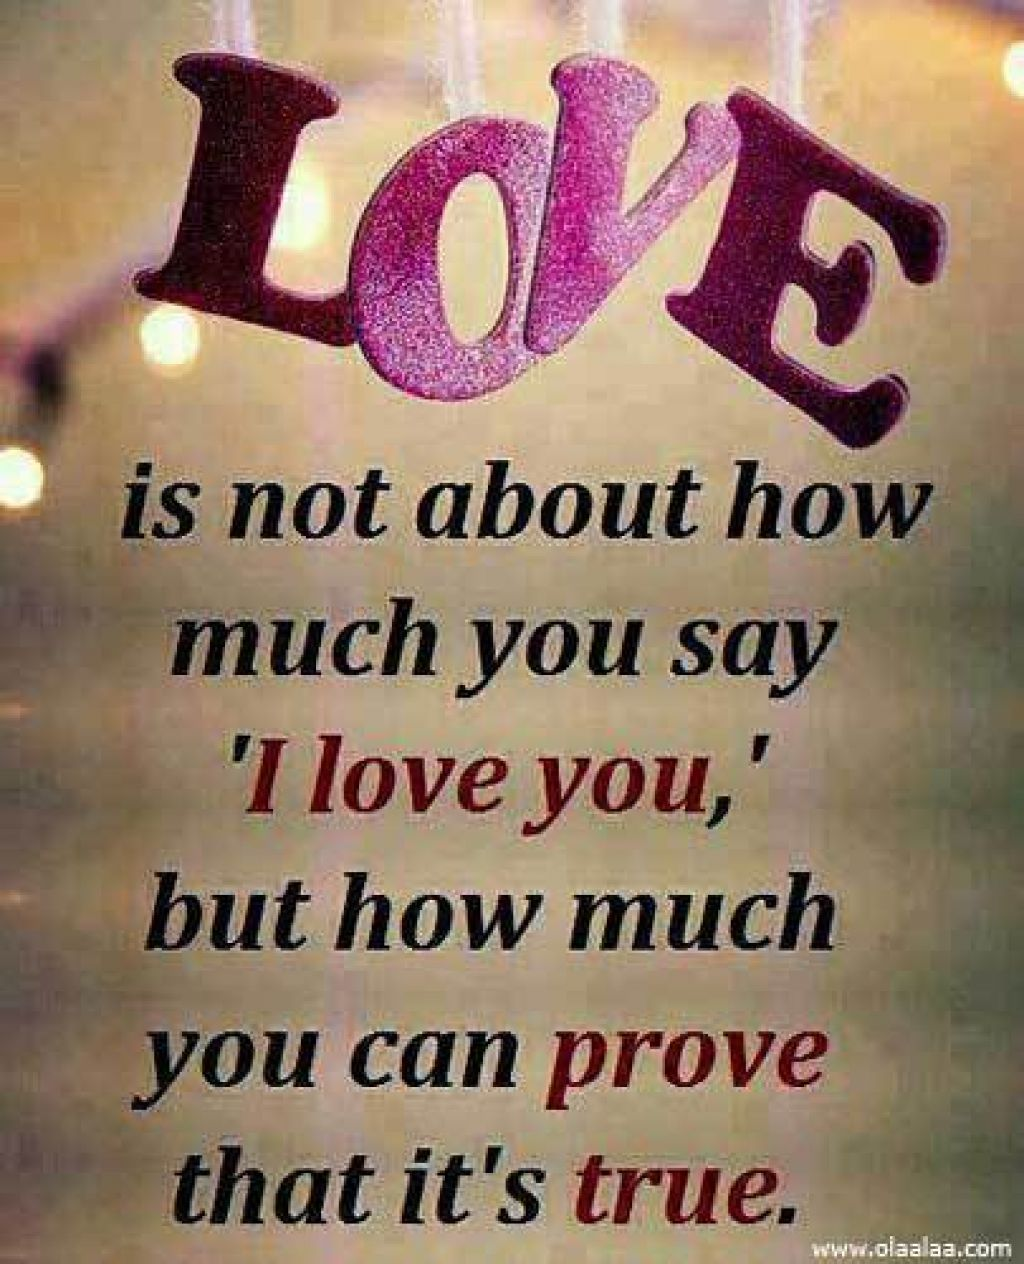 Image of: Views Quotes About Love English Quotemasterorg Quotes About Love English 88 Quotes